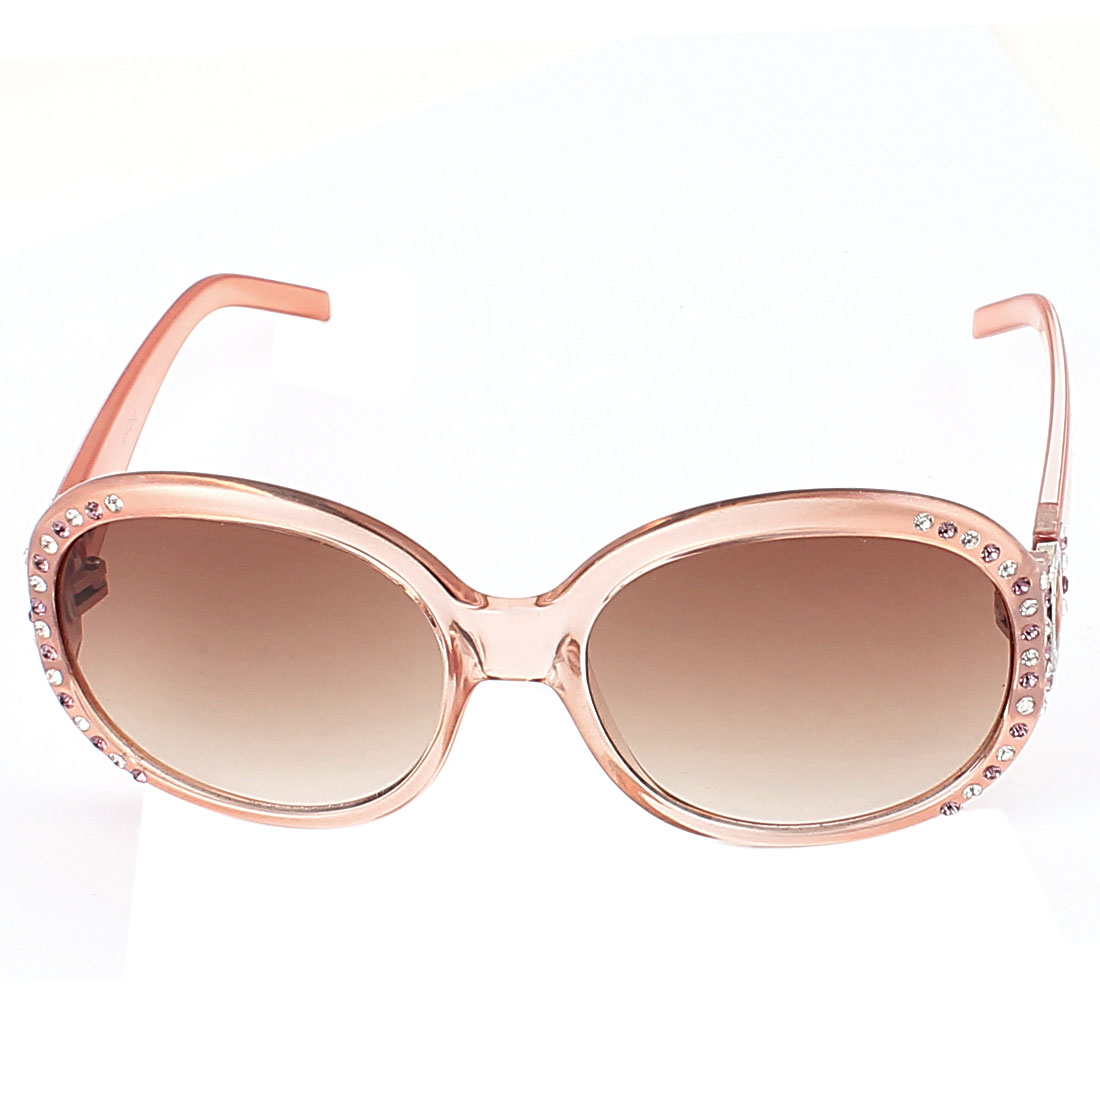 Lady Oversized Plastic Pink Frame Sunglasses Eyewear Shades